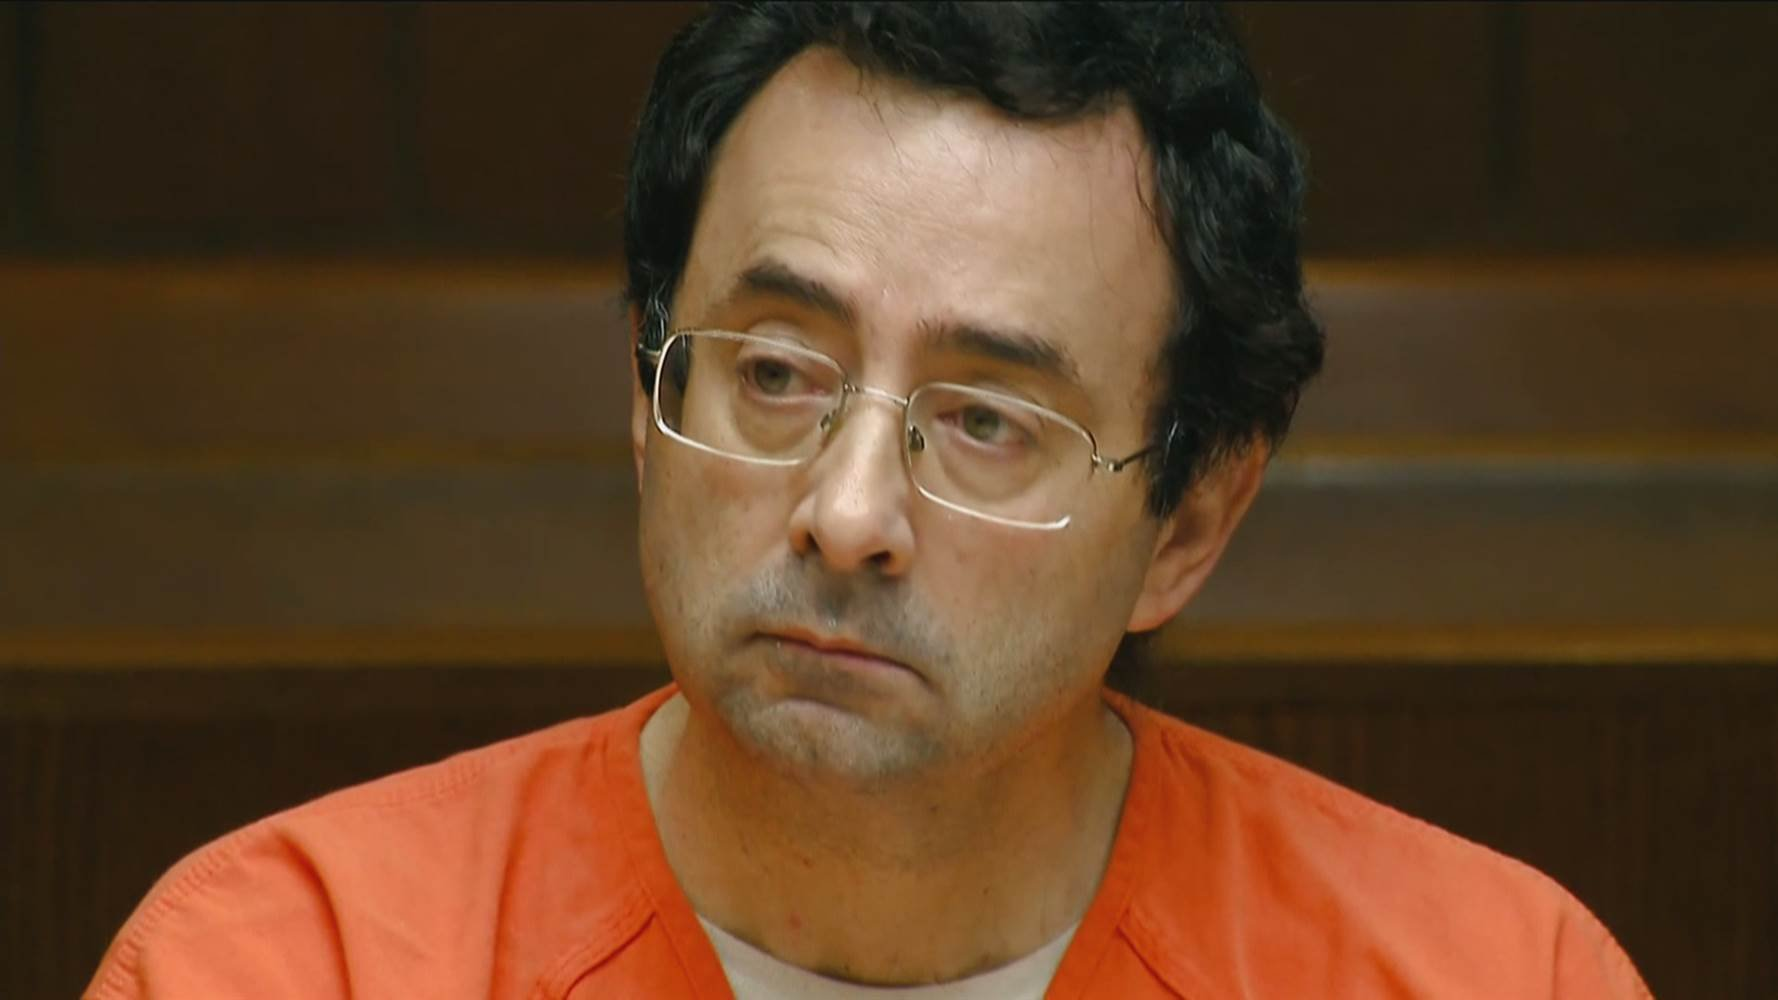 Convicted Former USA Gymnastics Doctor Moved to Arizona Federal Penitentiary